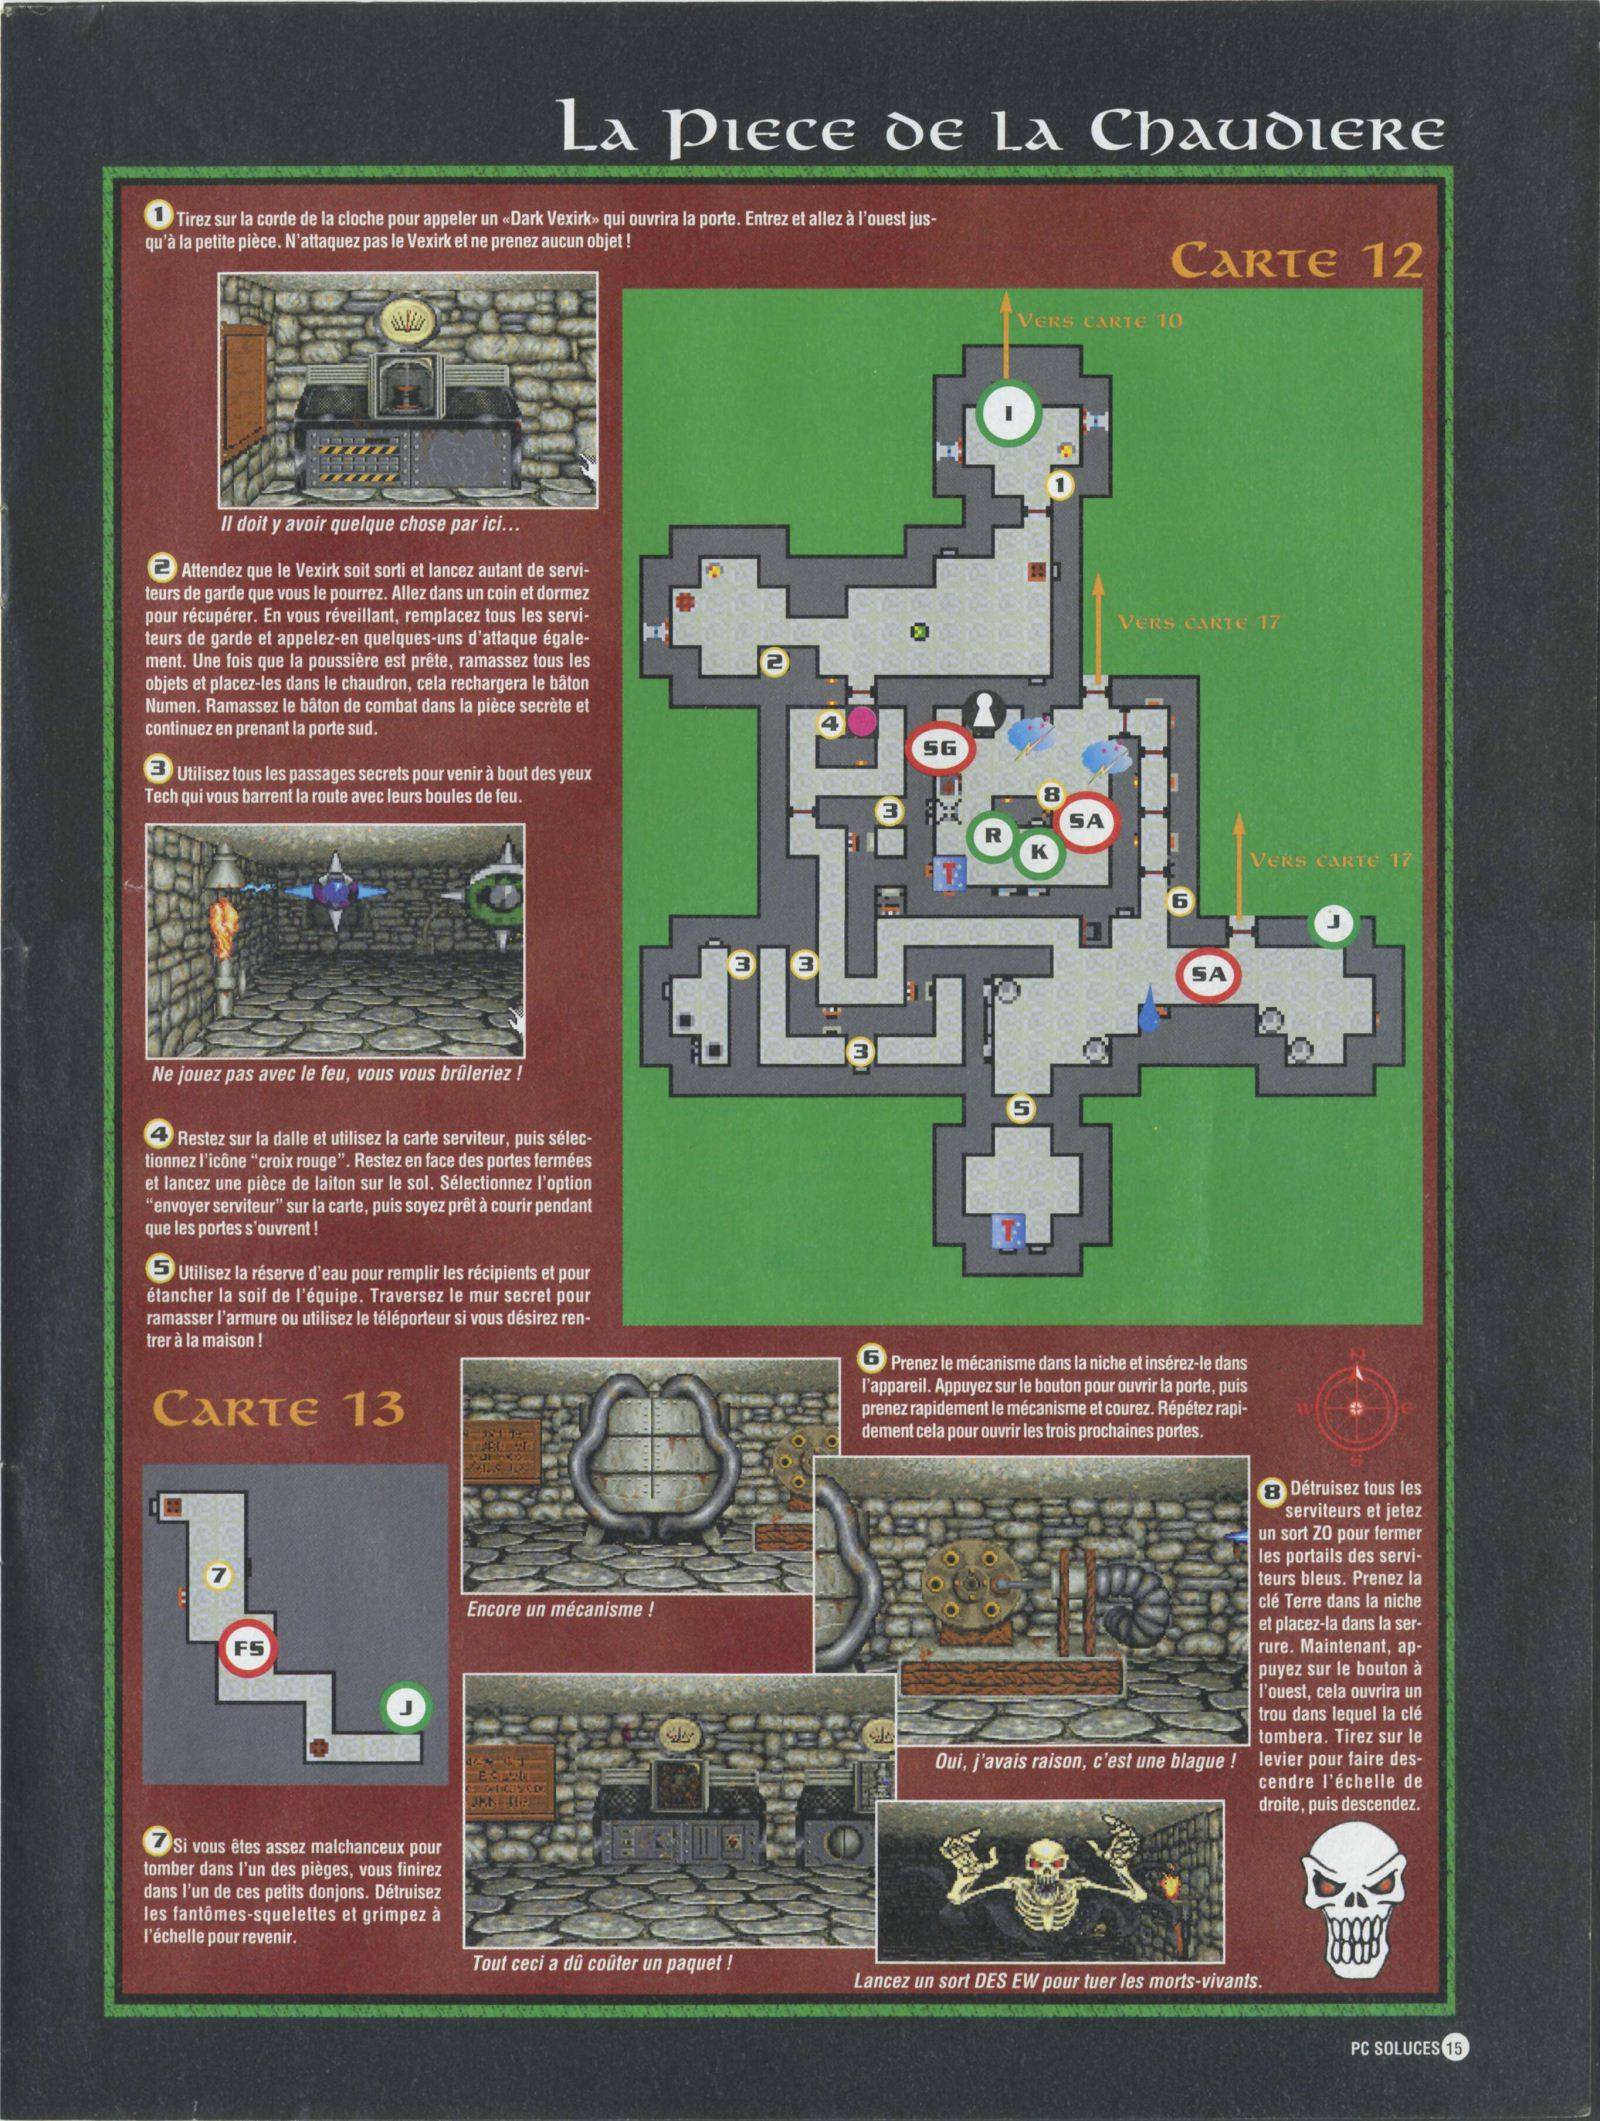 Dungeon Master II solution published in French magazine &amp;#039;PC Soluces&amp;#039;, Issue#1, February-March 1996, Page15